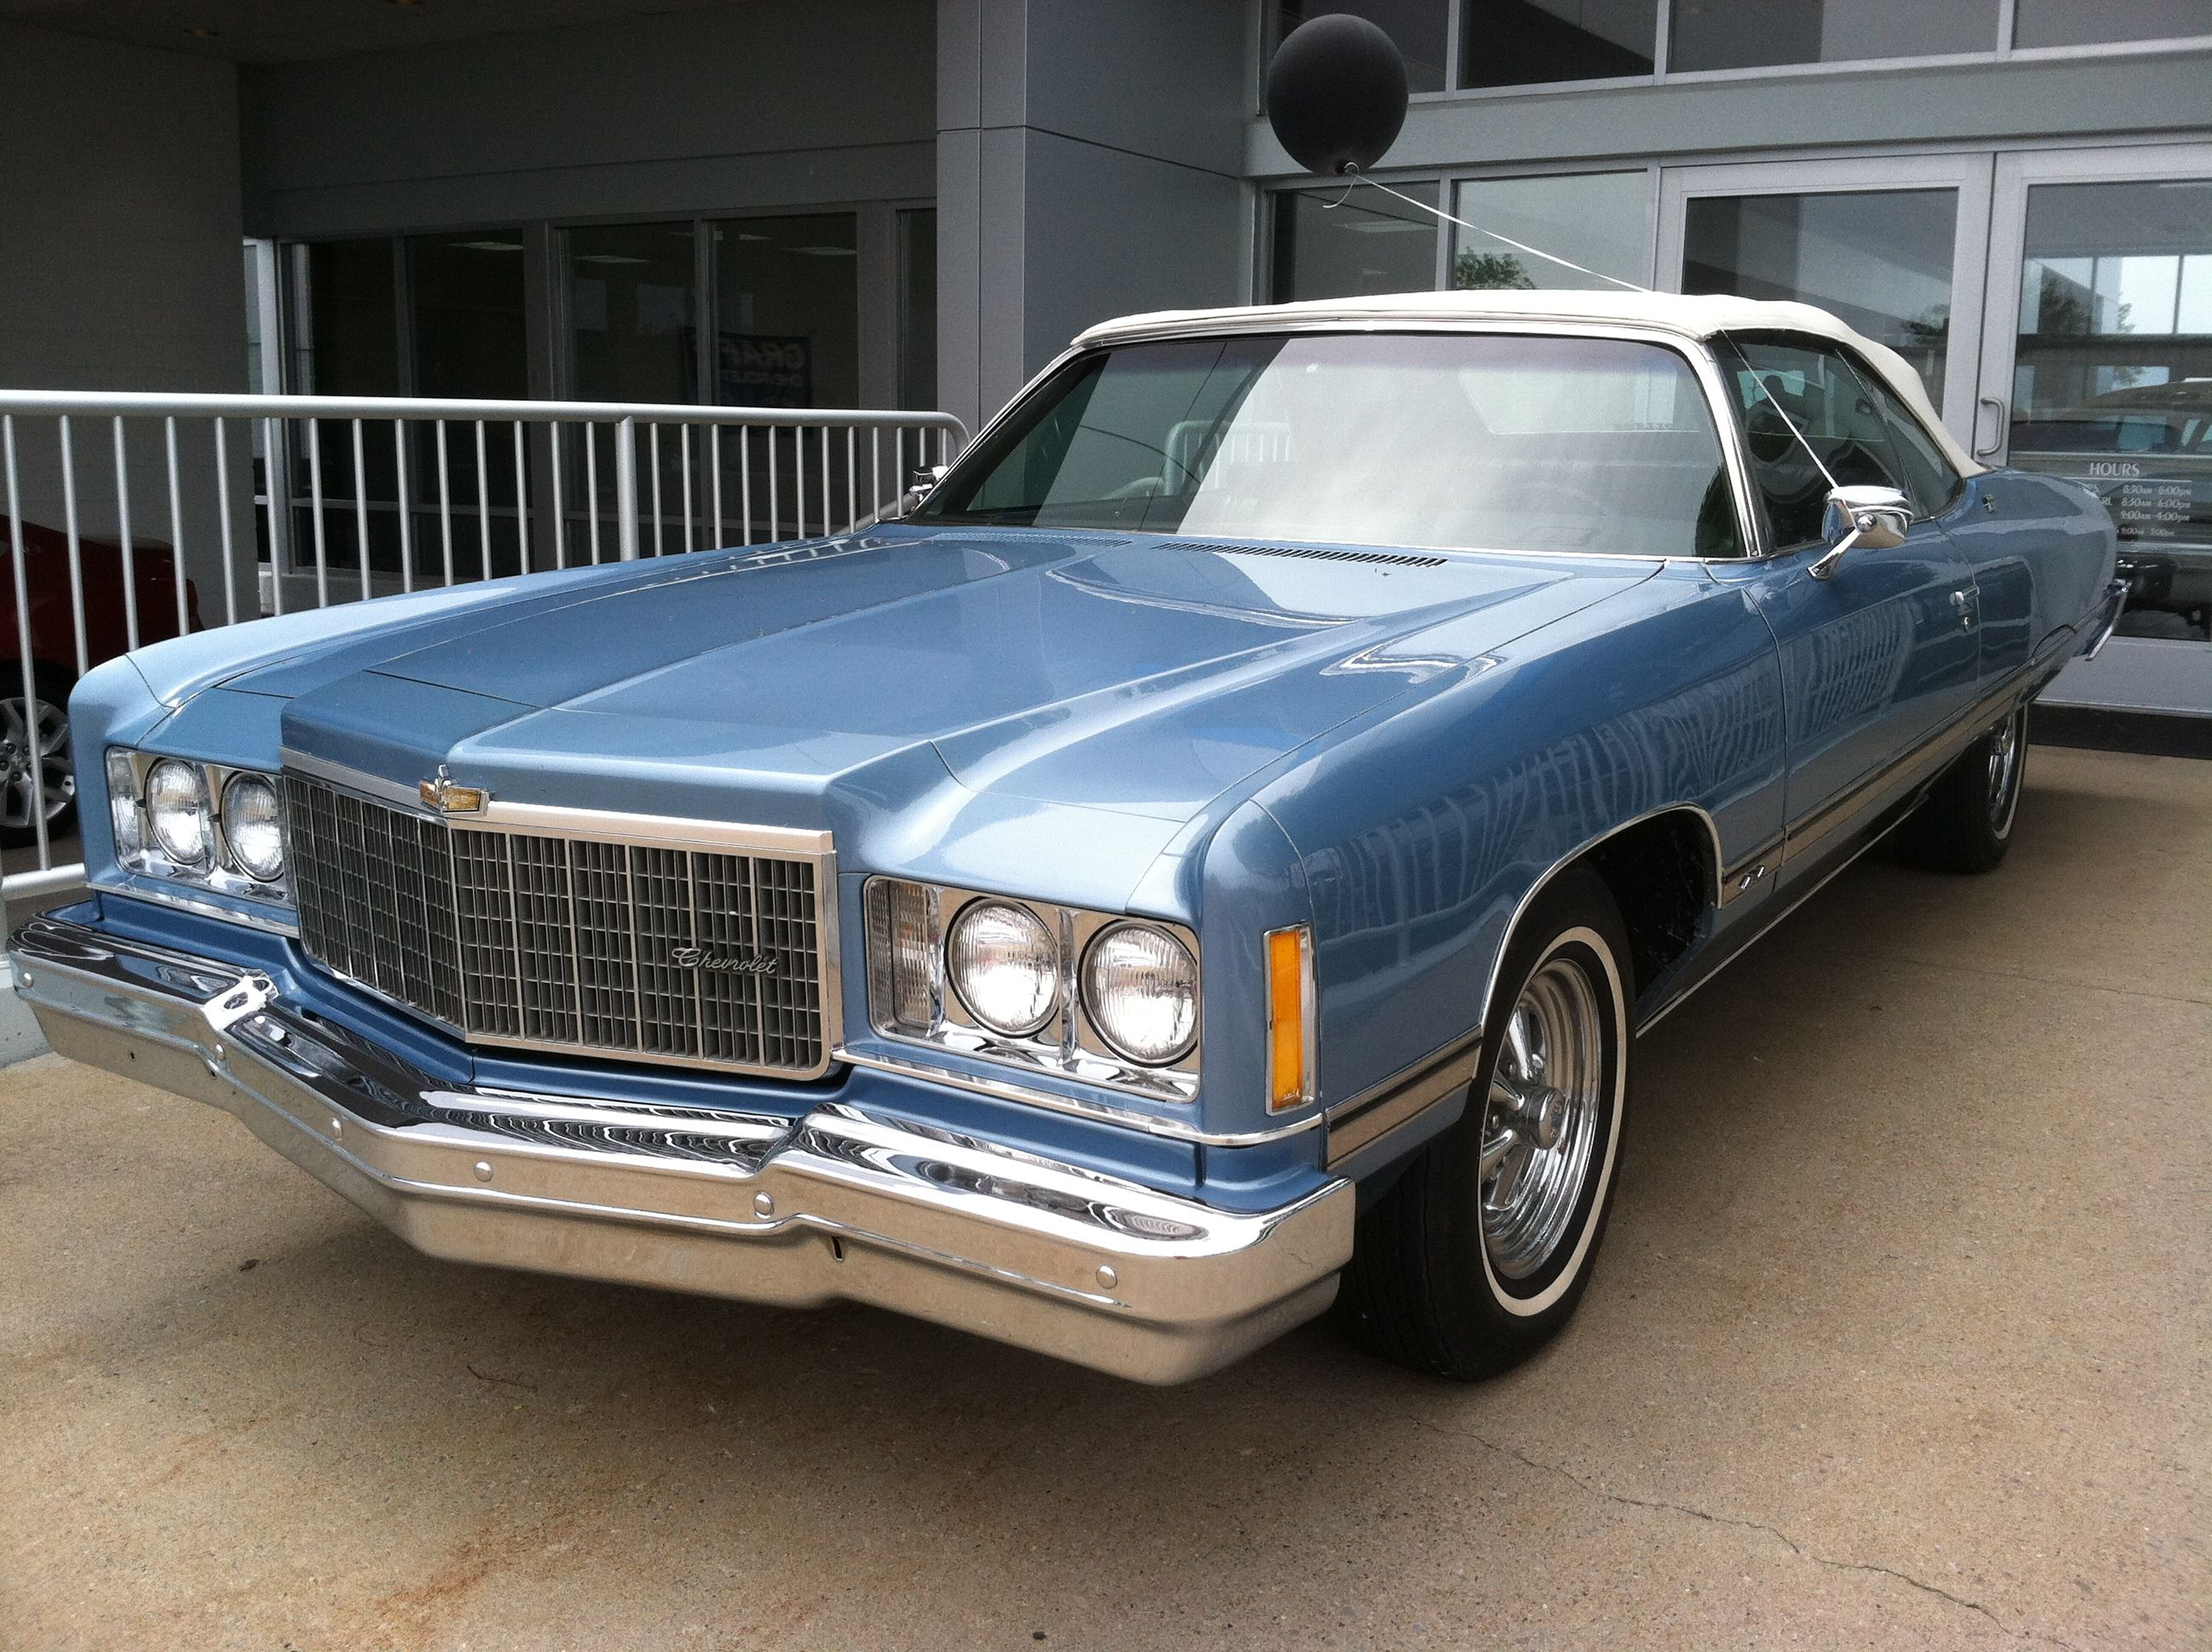 small resolution of 1974 chevrolet caprice convertible chevroletimpala1970 chevrolet caprice chevrolet chevelle chevy impala ss